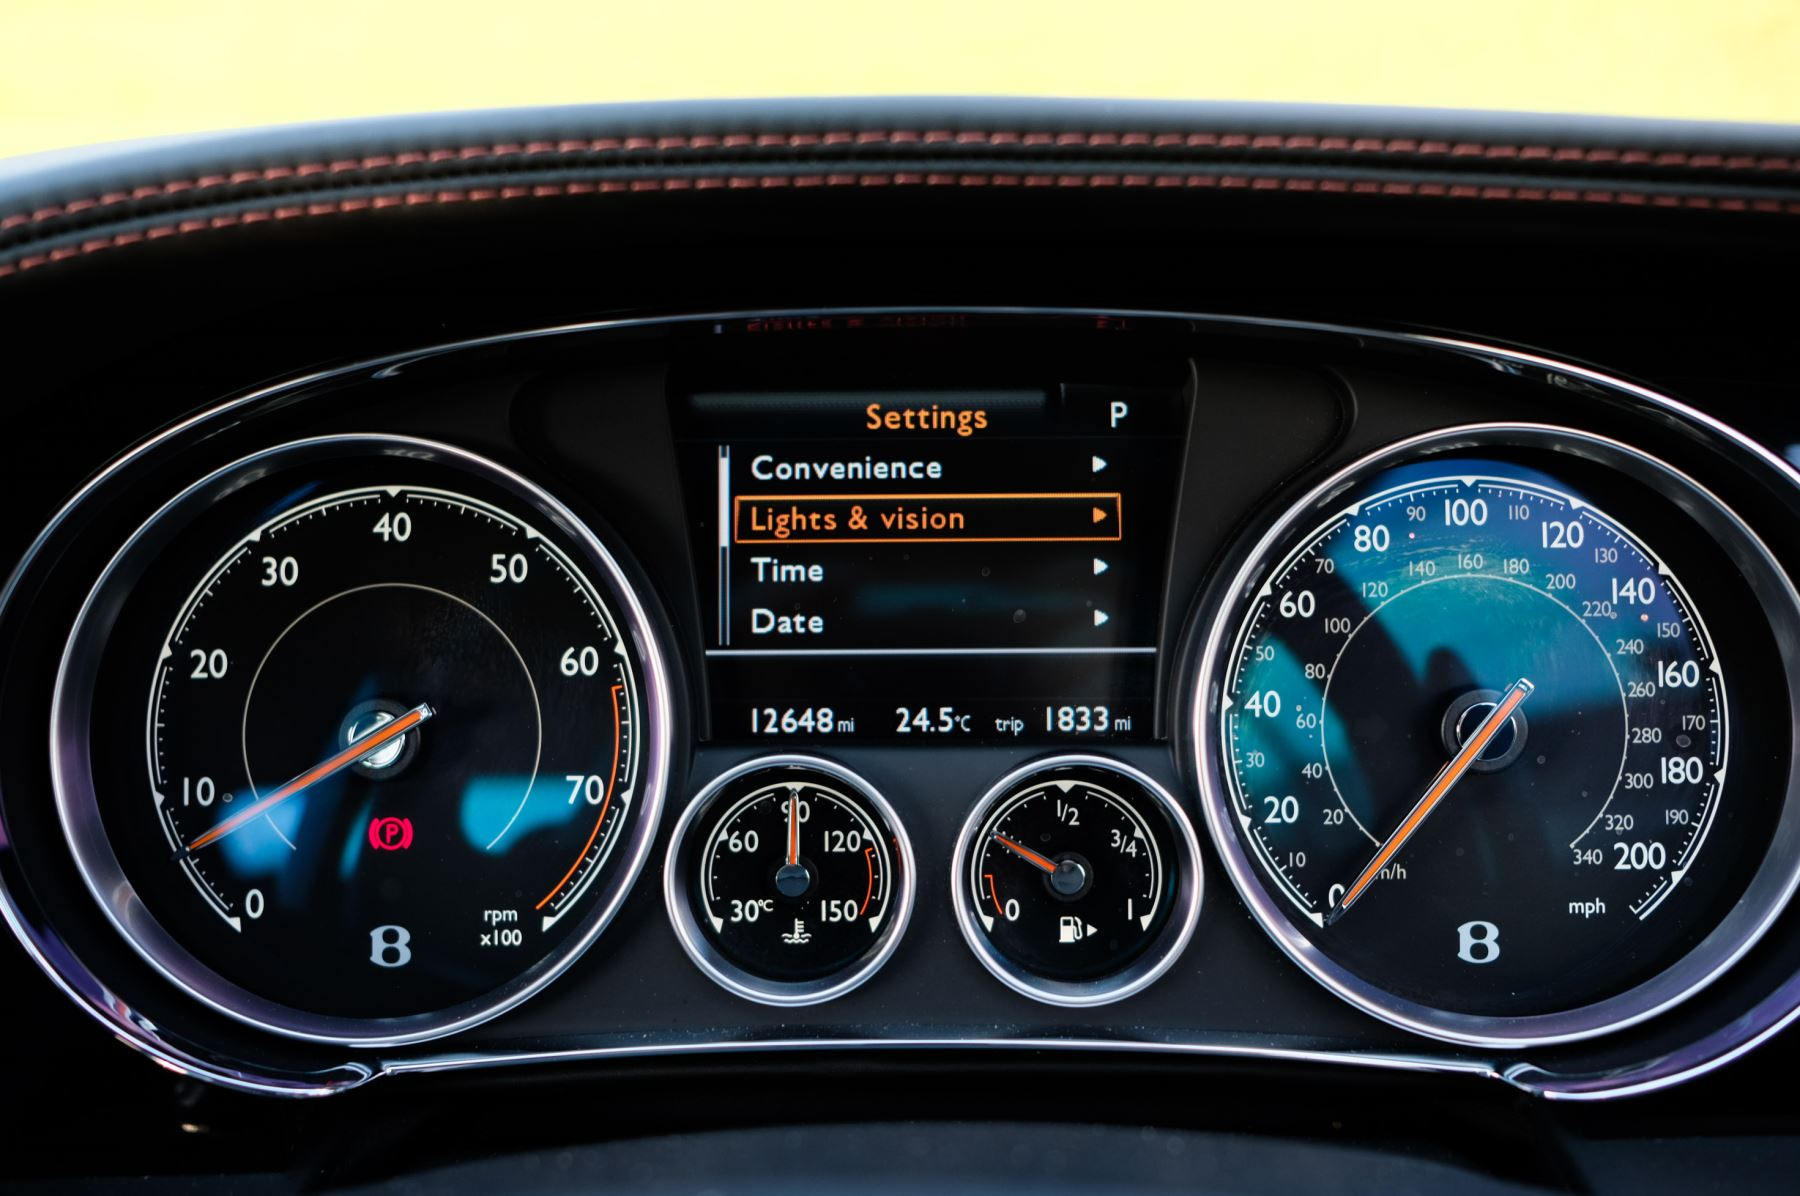 Bentley Continental GTC 4.0 V8 S - Mulliner Driving Spec - Sports Exhaust image 18